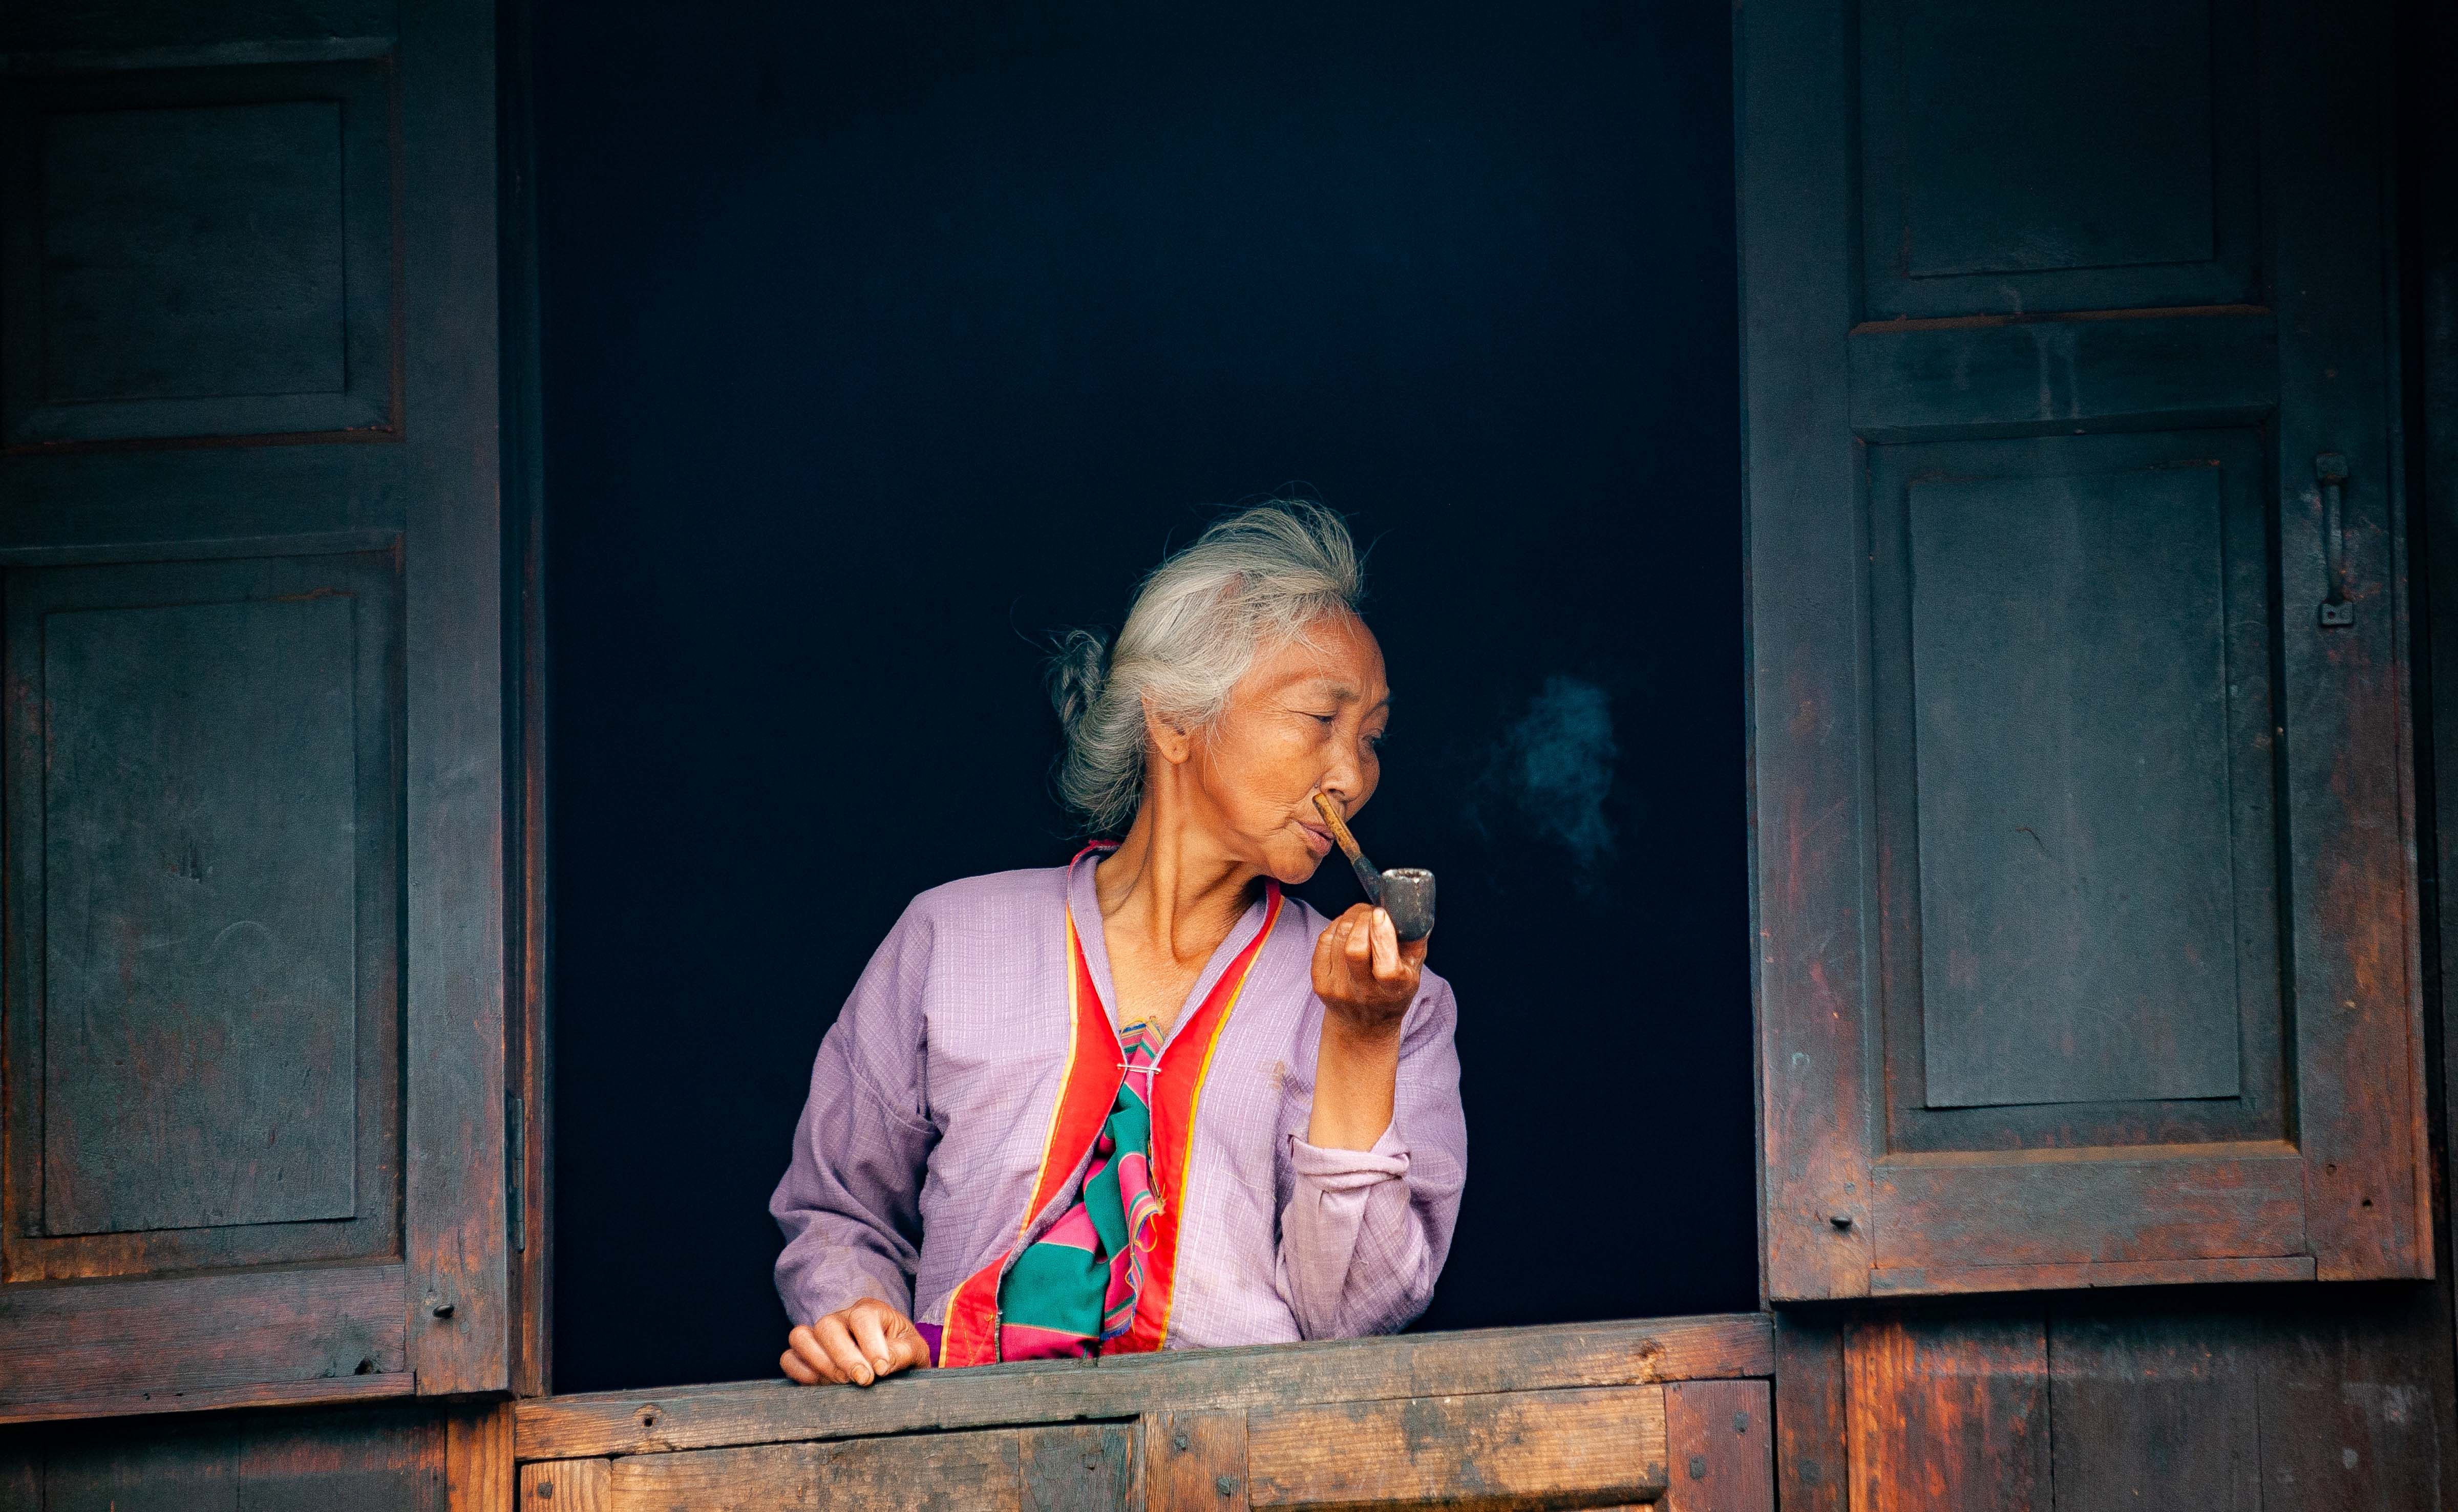 Myanmar, Shan Prov, Old Woman Pipe, 2009, IMG 4383